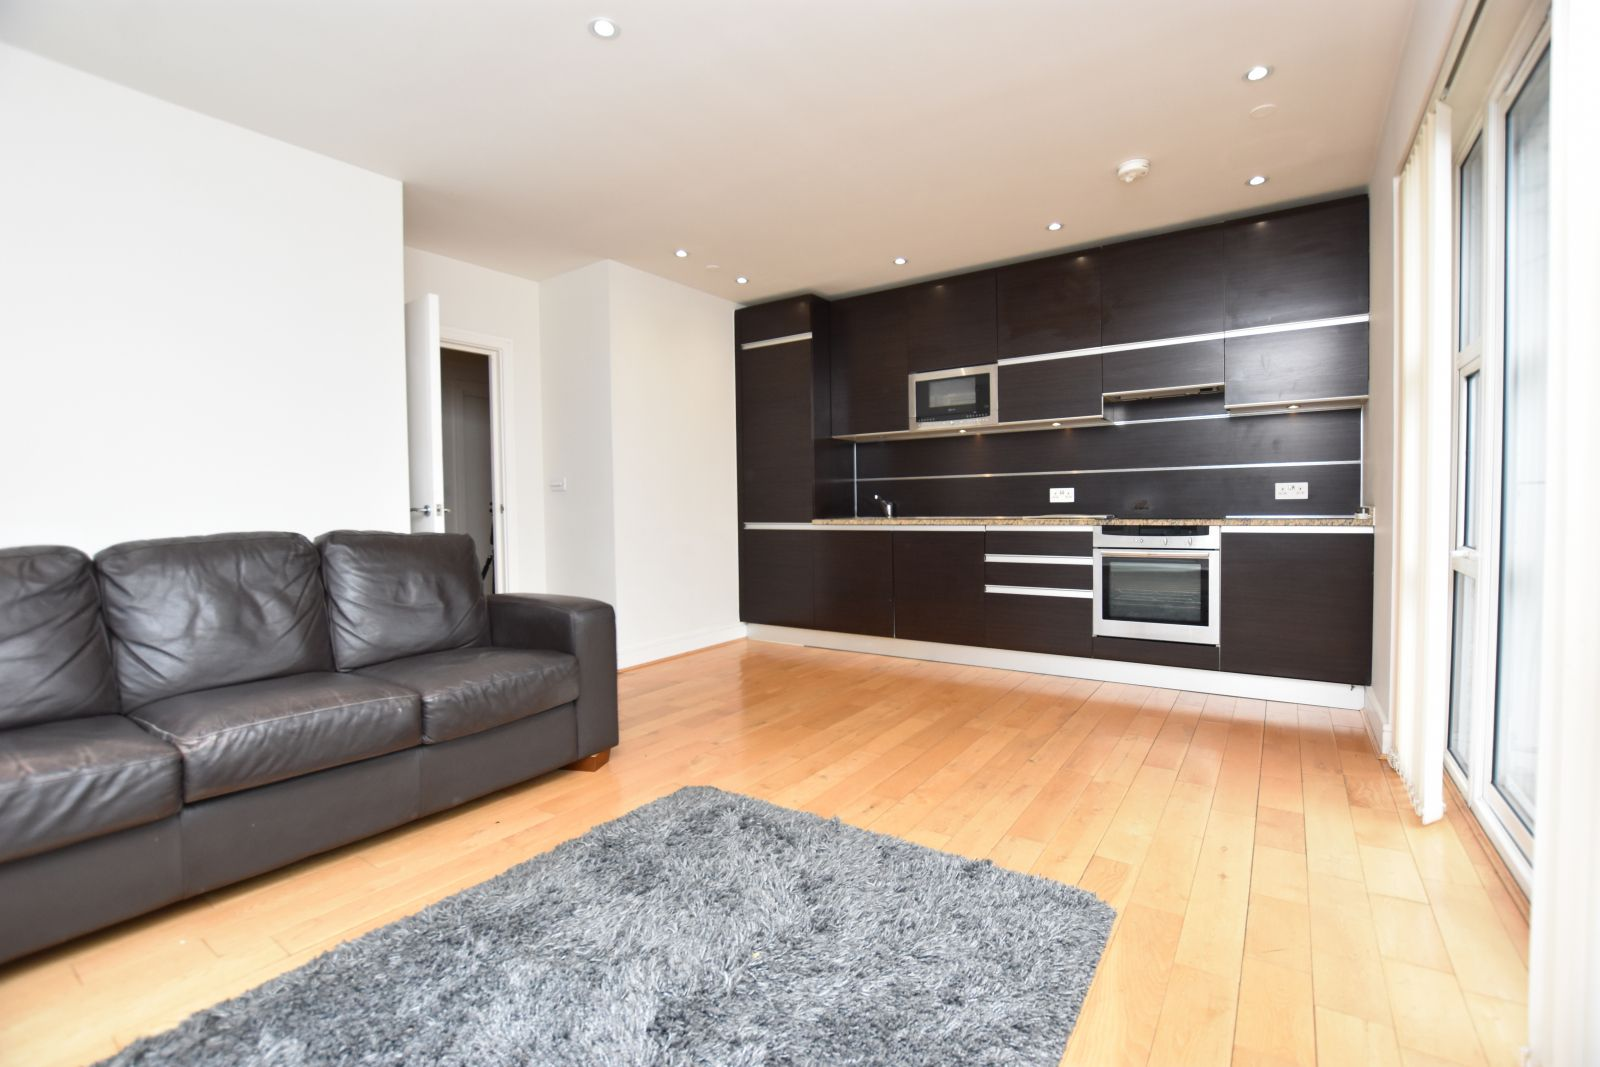 Property photo 1 of 12. Wanstead East London Luxury Two Bed Penthouse Apartment